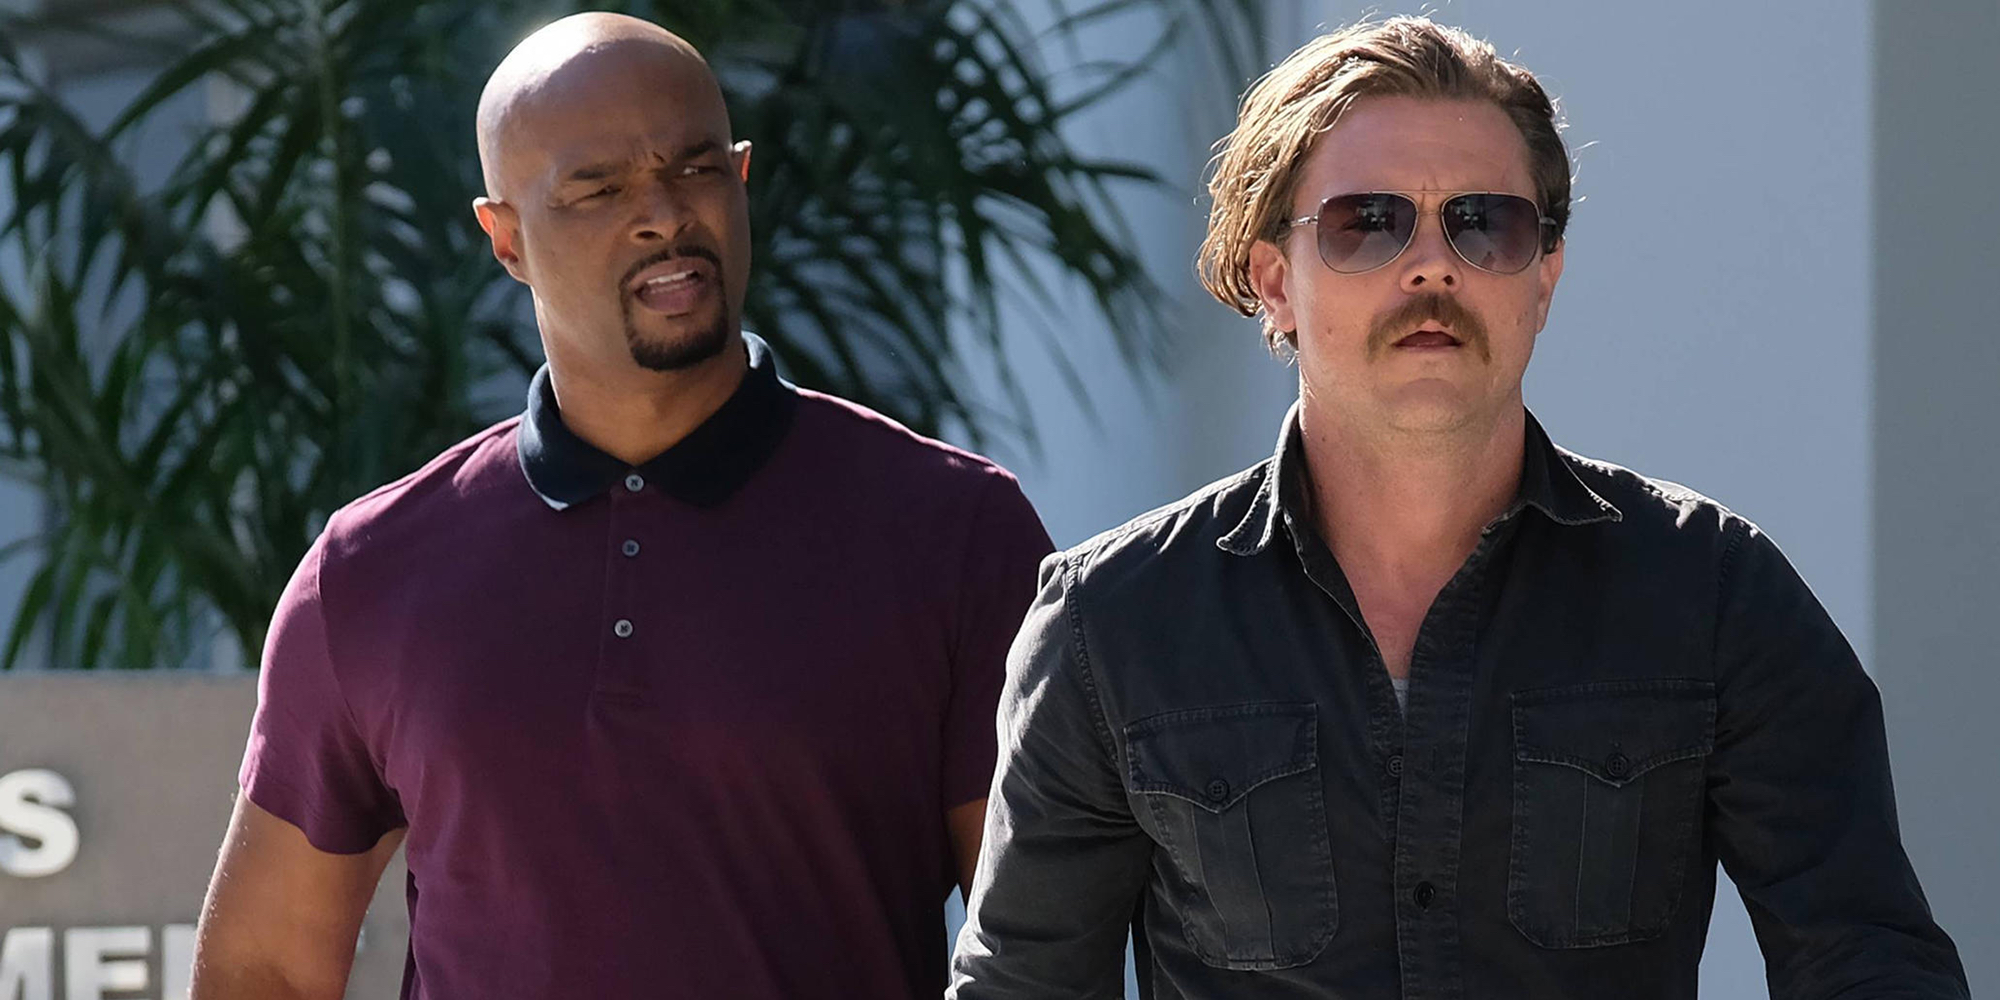 Damon Wayans and Clayne Crawford in Lethal Weapon